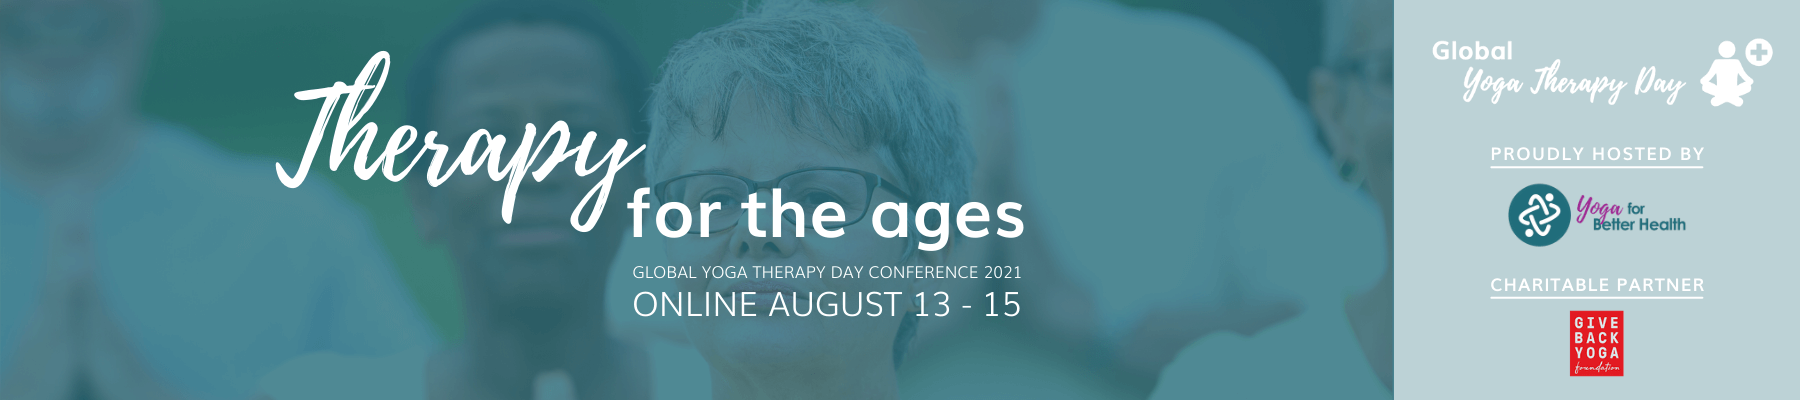 Global Yoga Therapy Day Conference 2021: Online, August 13-15